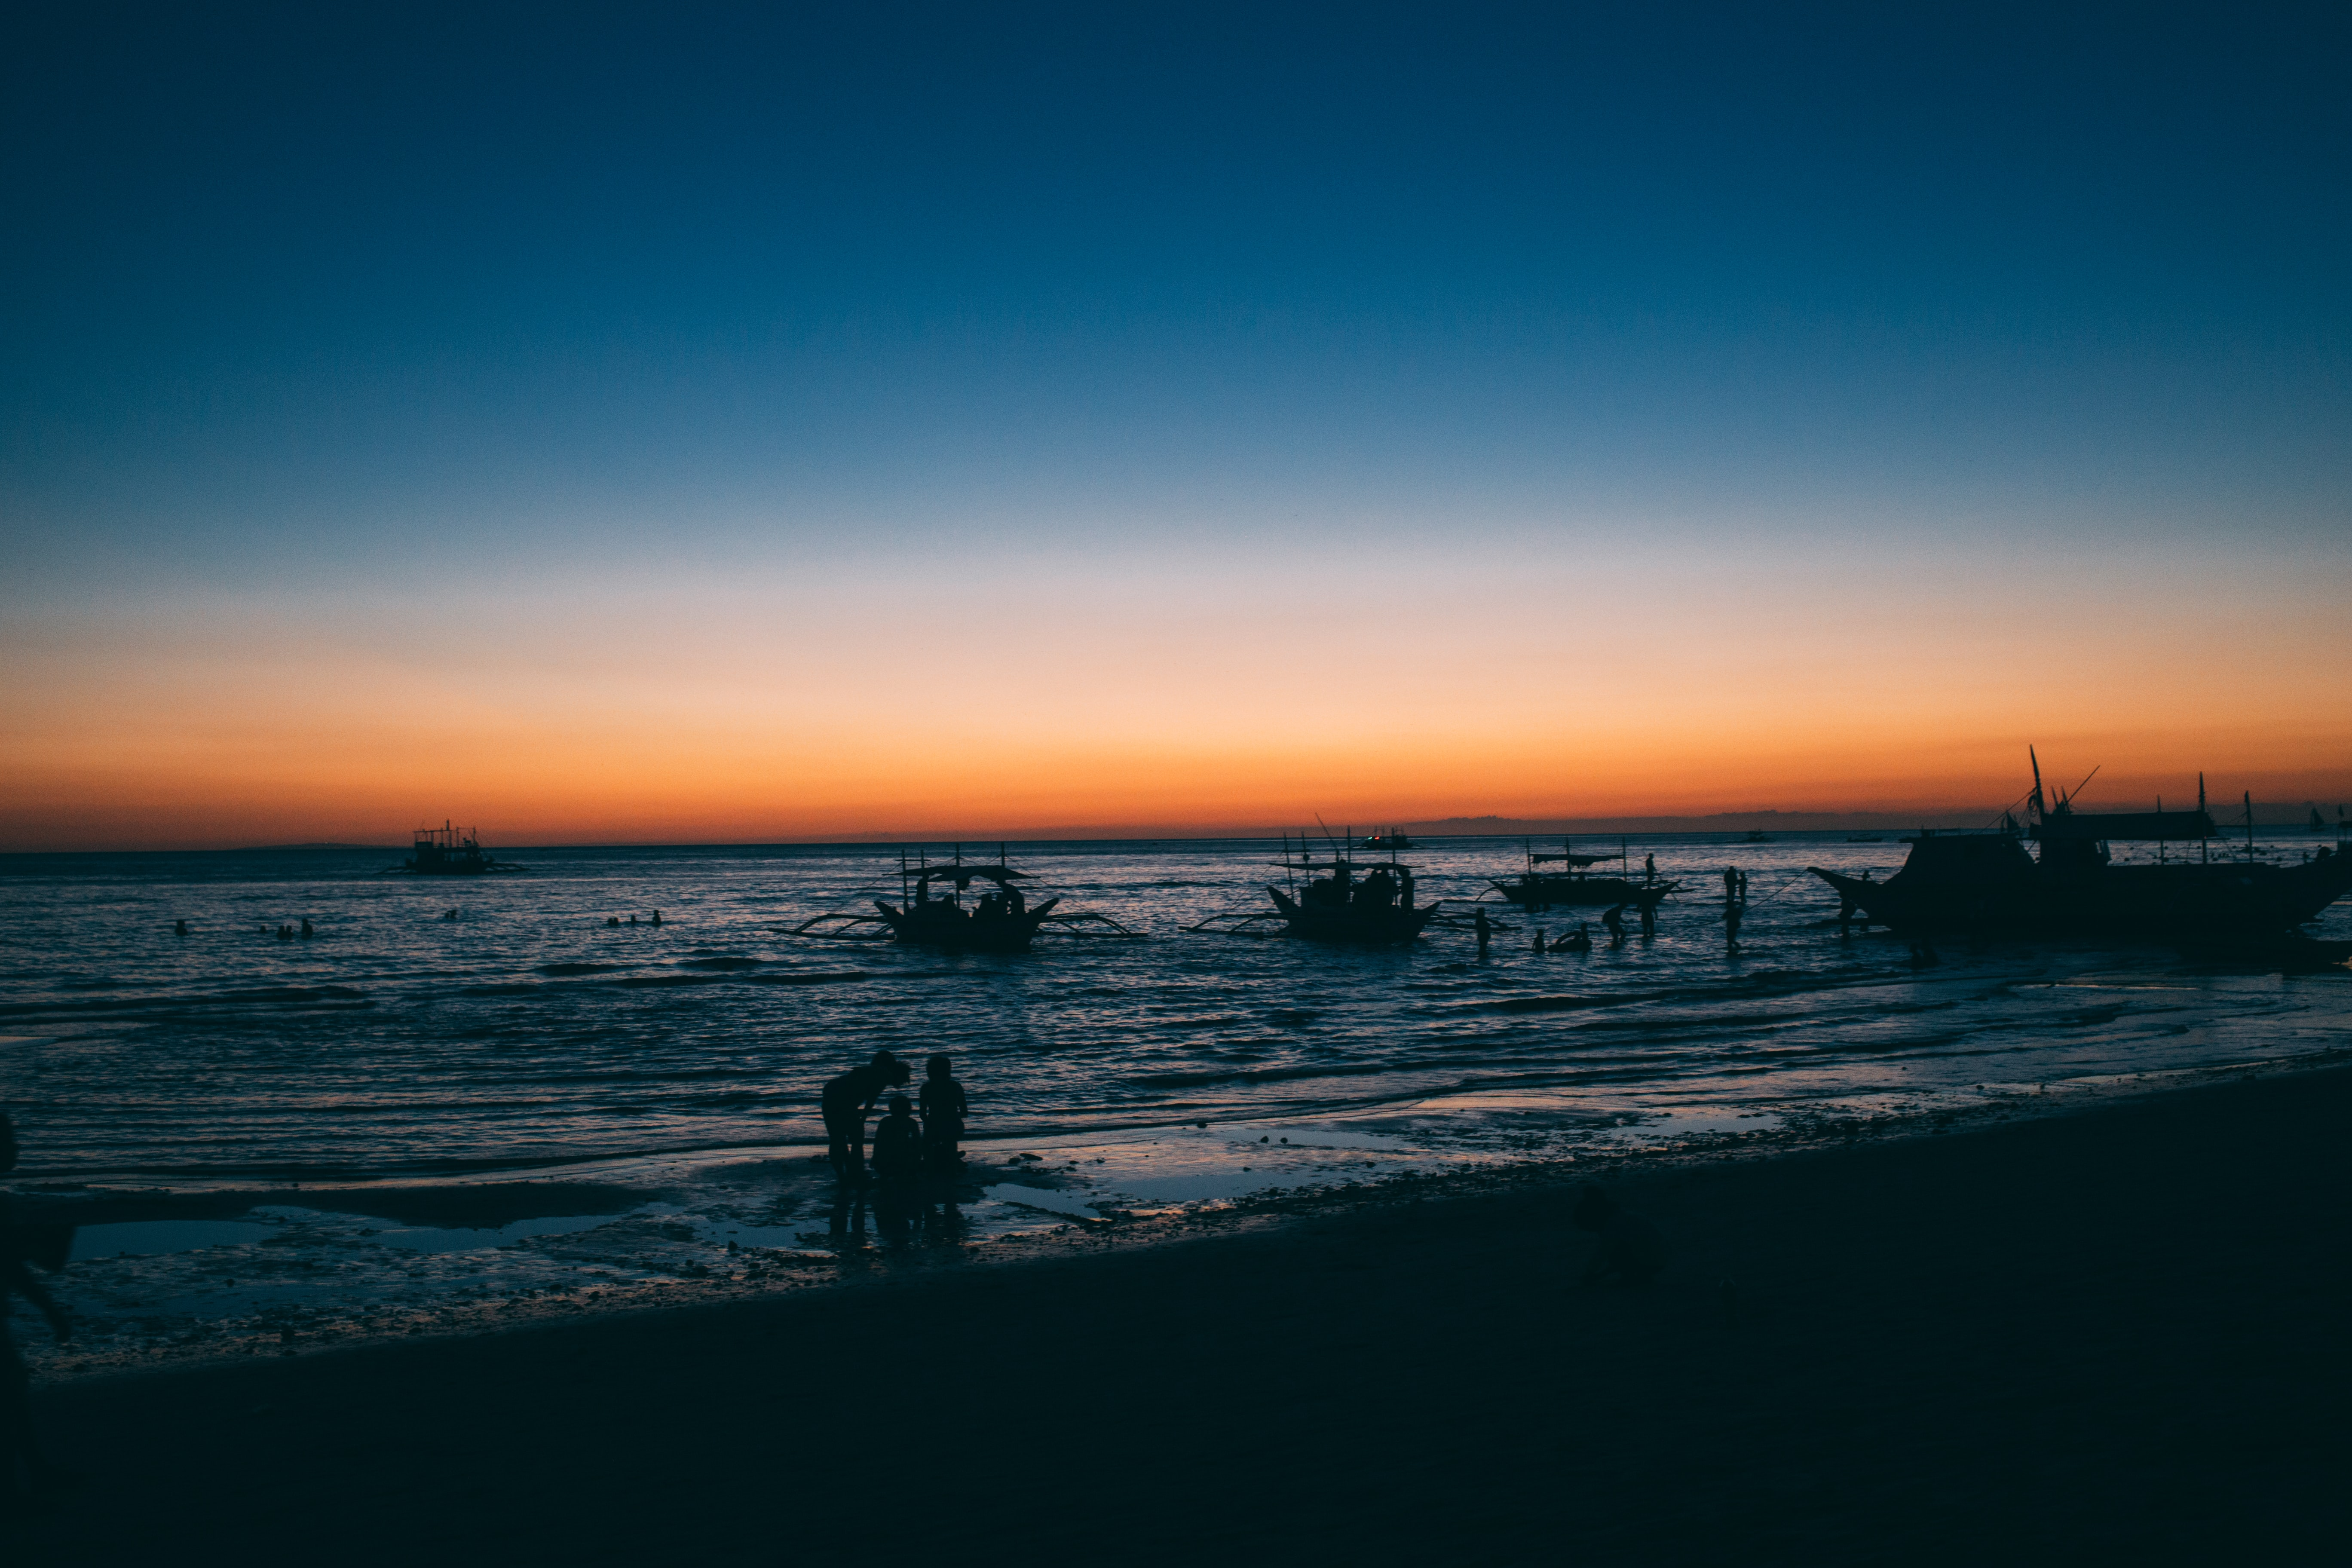 Fishing boats near the coast of Boracay after the sunset